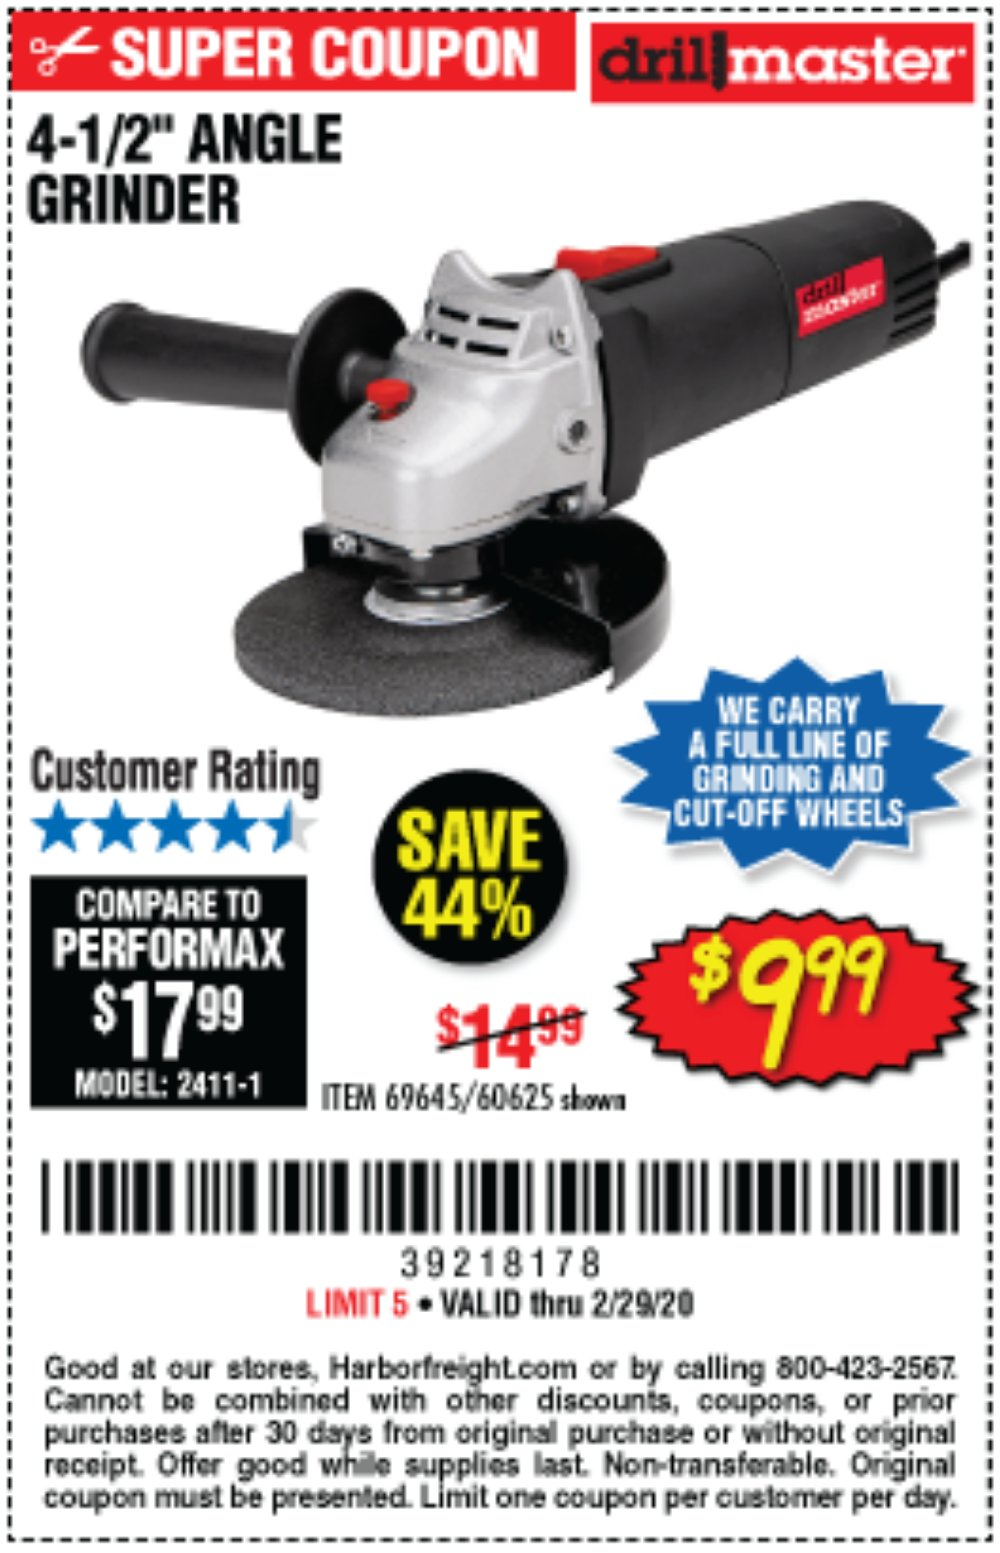 Harbor Freight Coupon, HF Coupons - 4-1/2